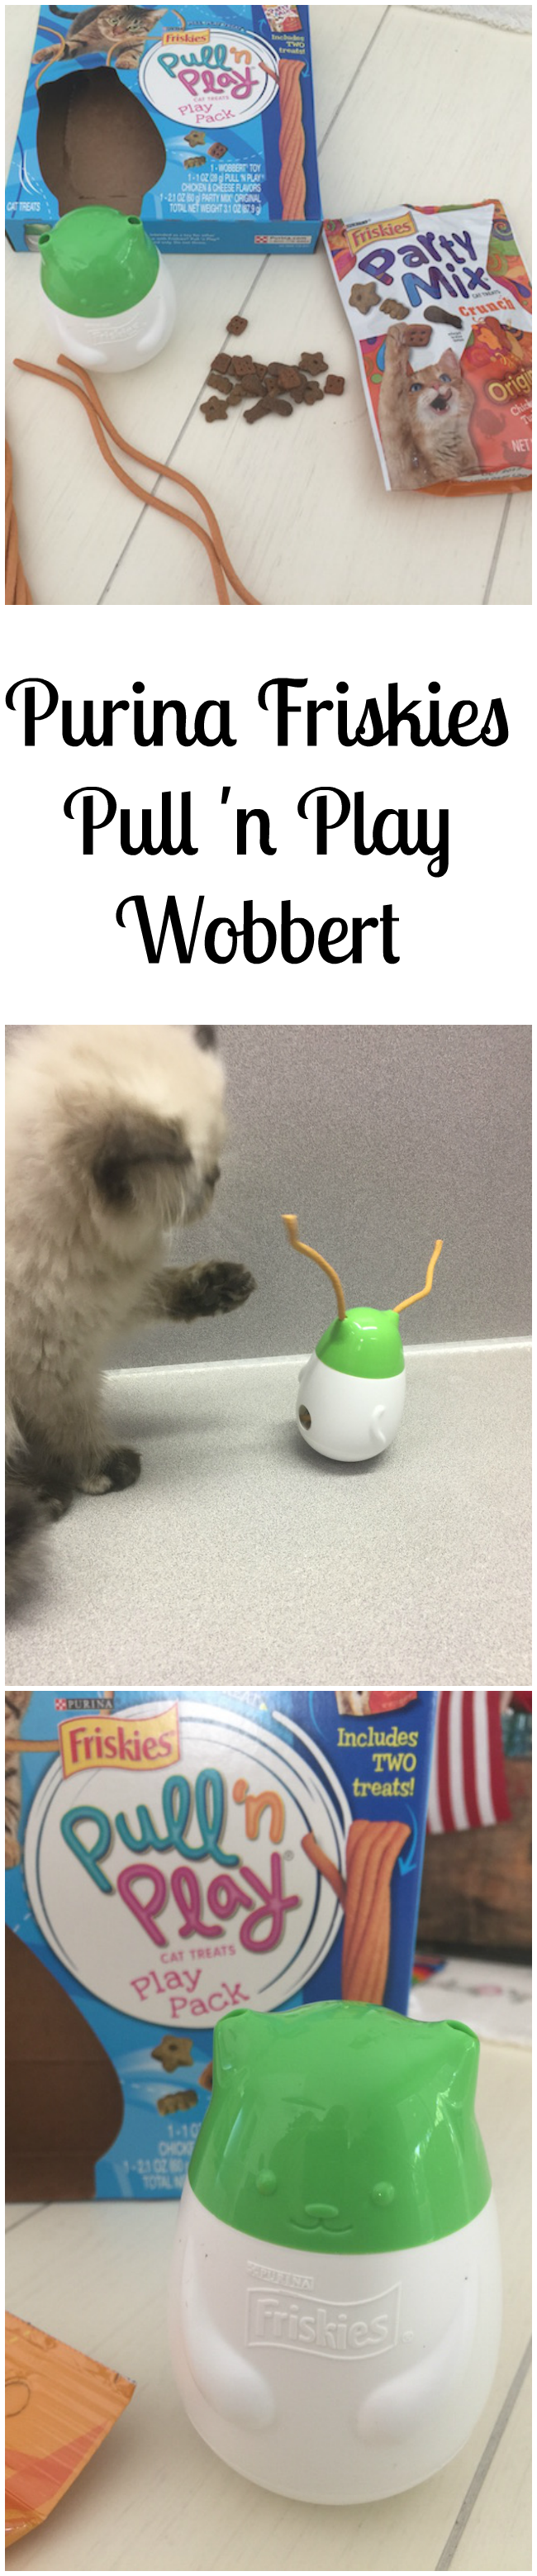 Wobbert is a wobbly cat toy that dispenses treats and tender edible strings that your cat can play with in the process. Available in 3 flavors at PetSmart!